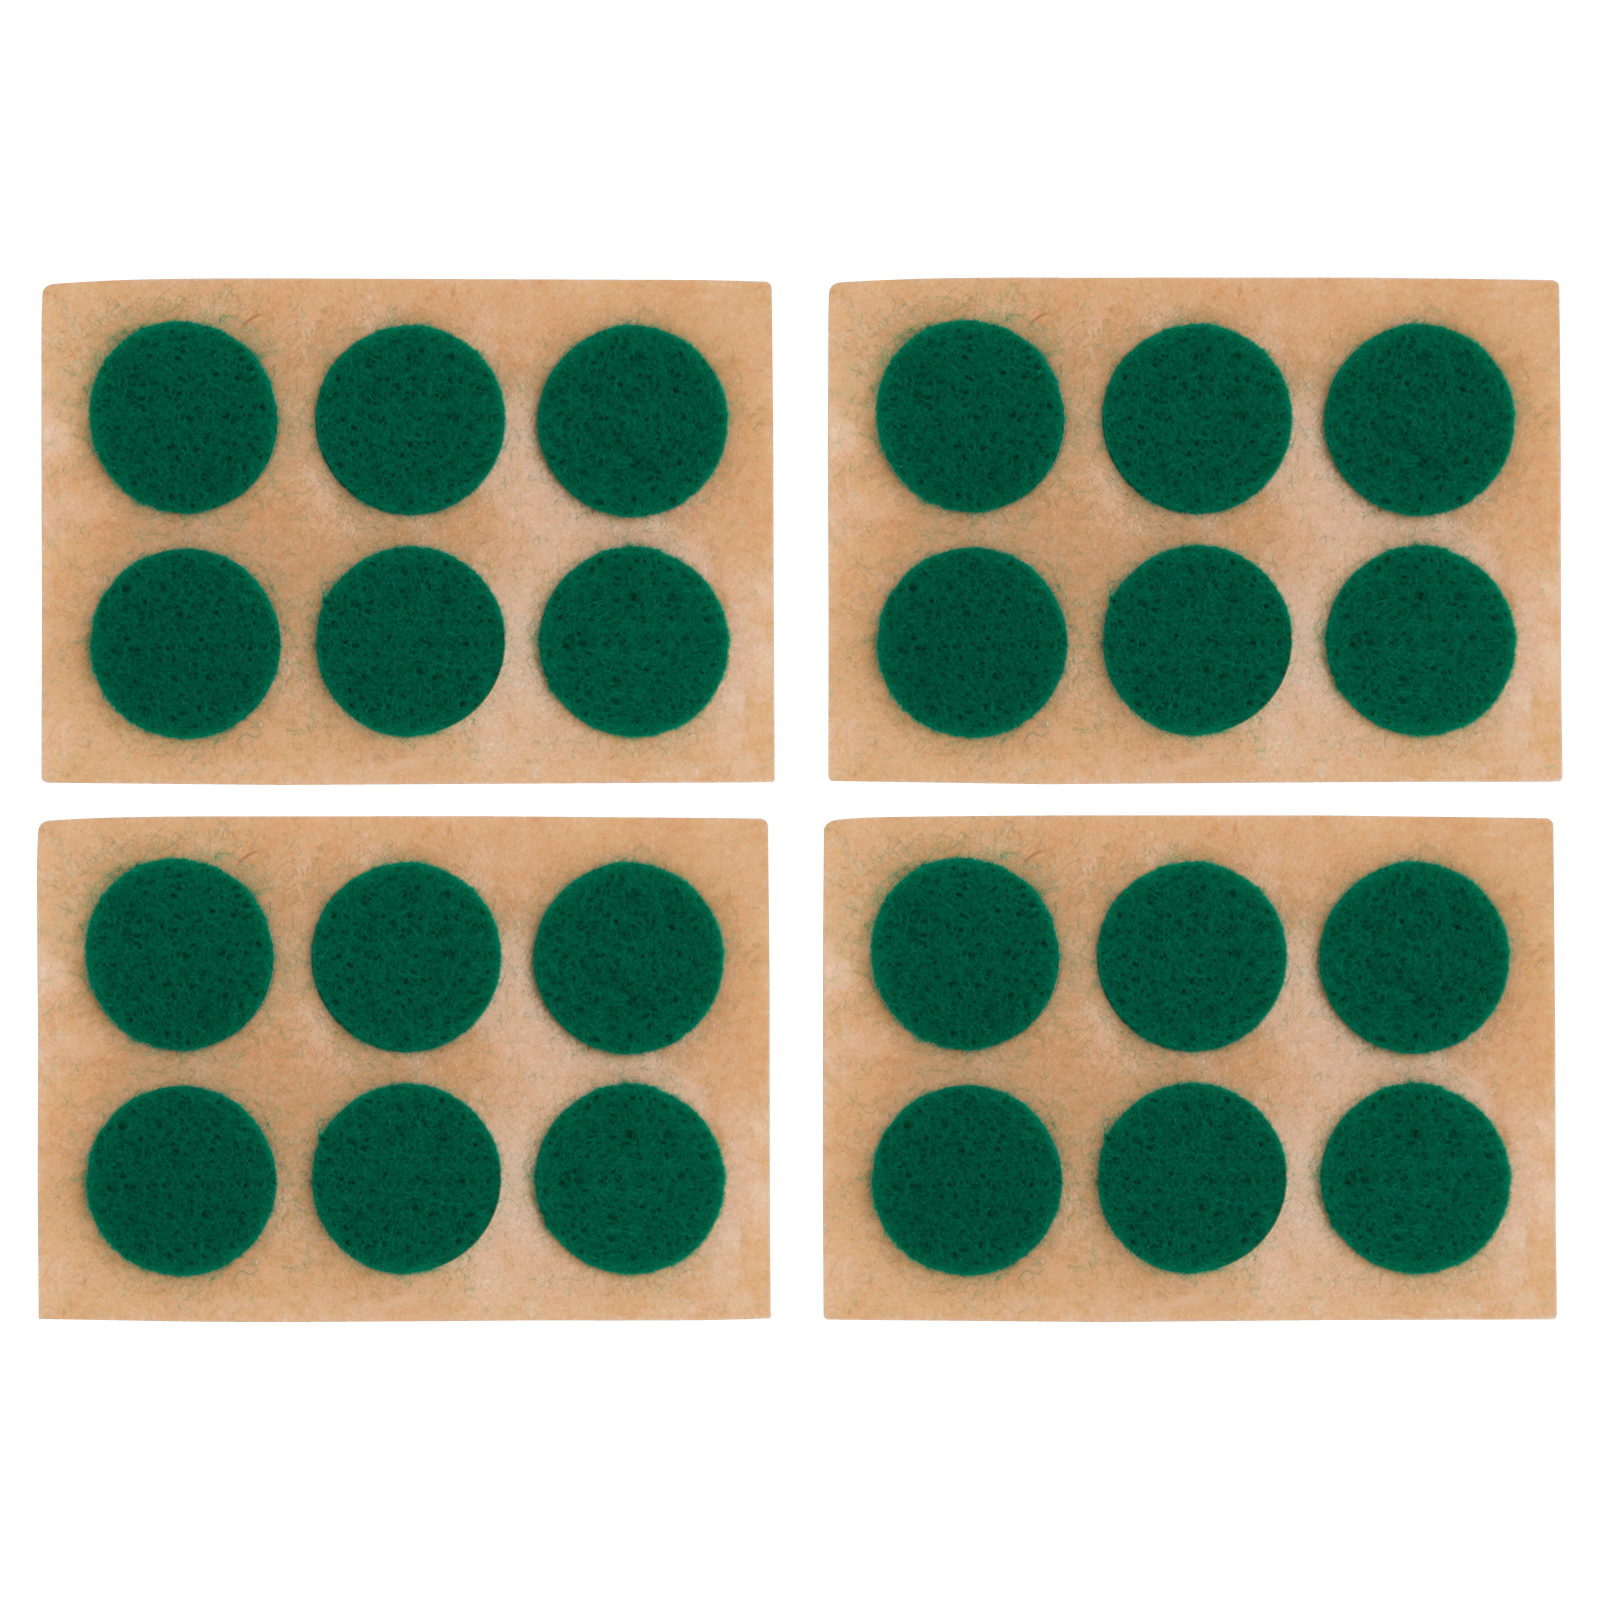 Picture of ProSource PH-122294-PS Furniture Pad, Felt Cloth, Green, 5/8 in Dia, Round